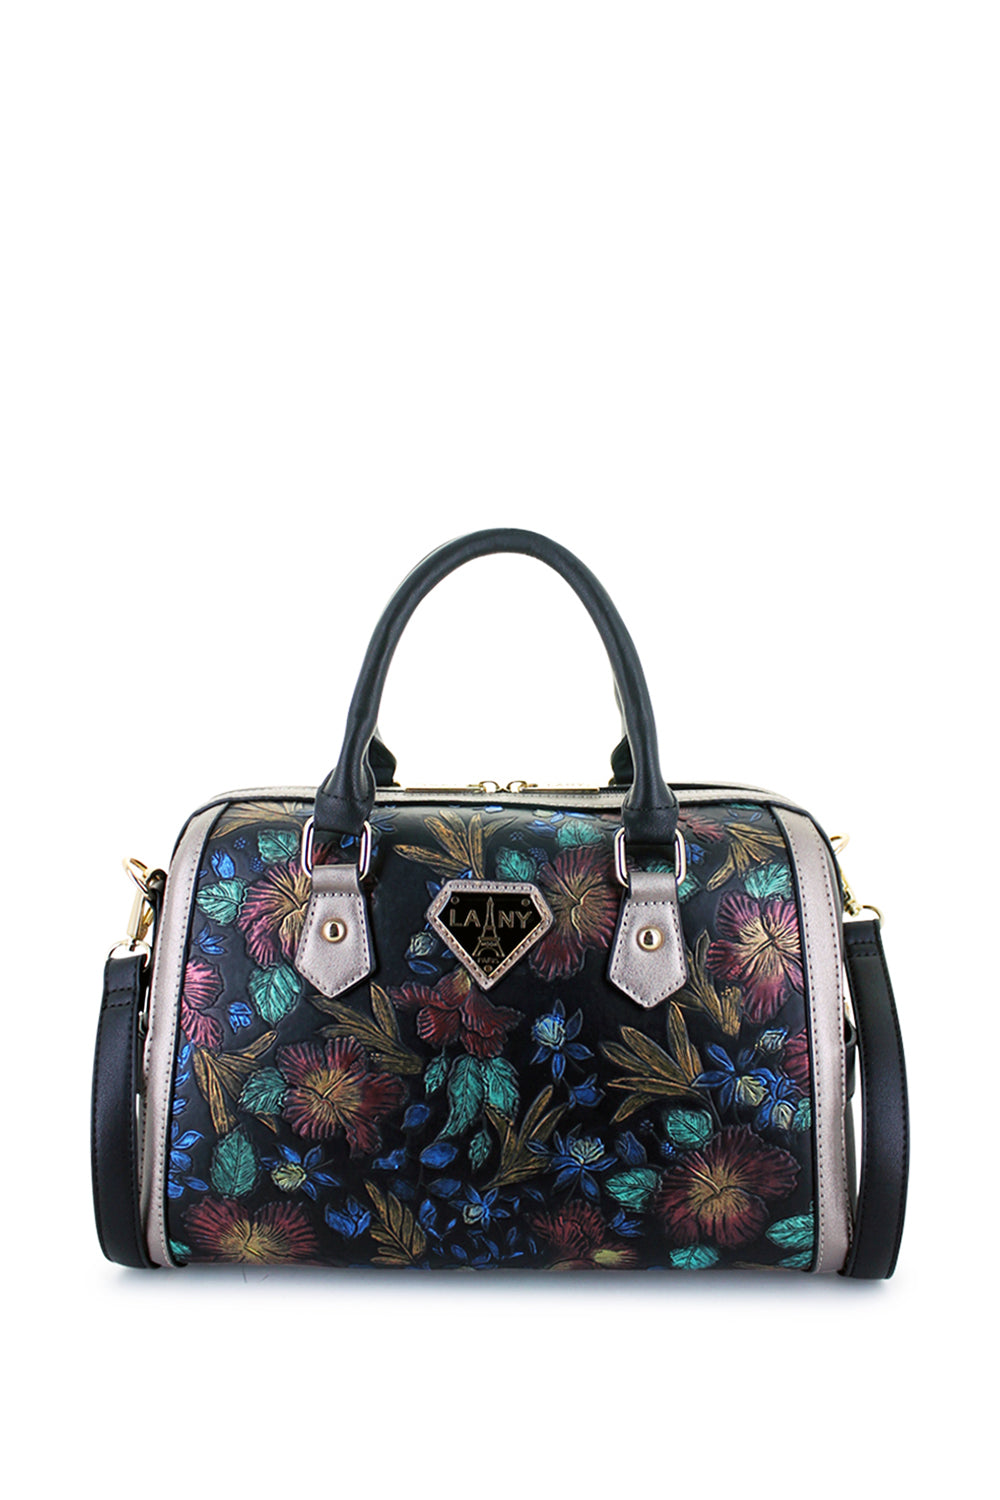 Laila Painted Floral Satchel - LANY